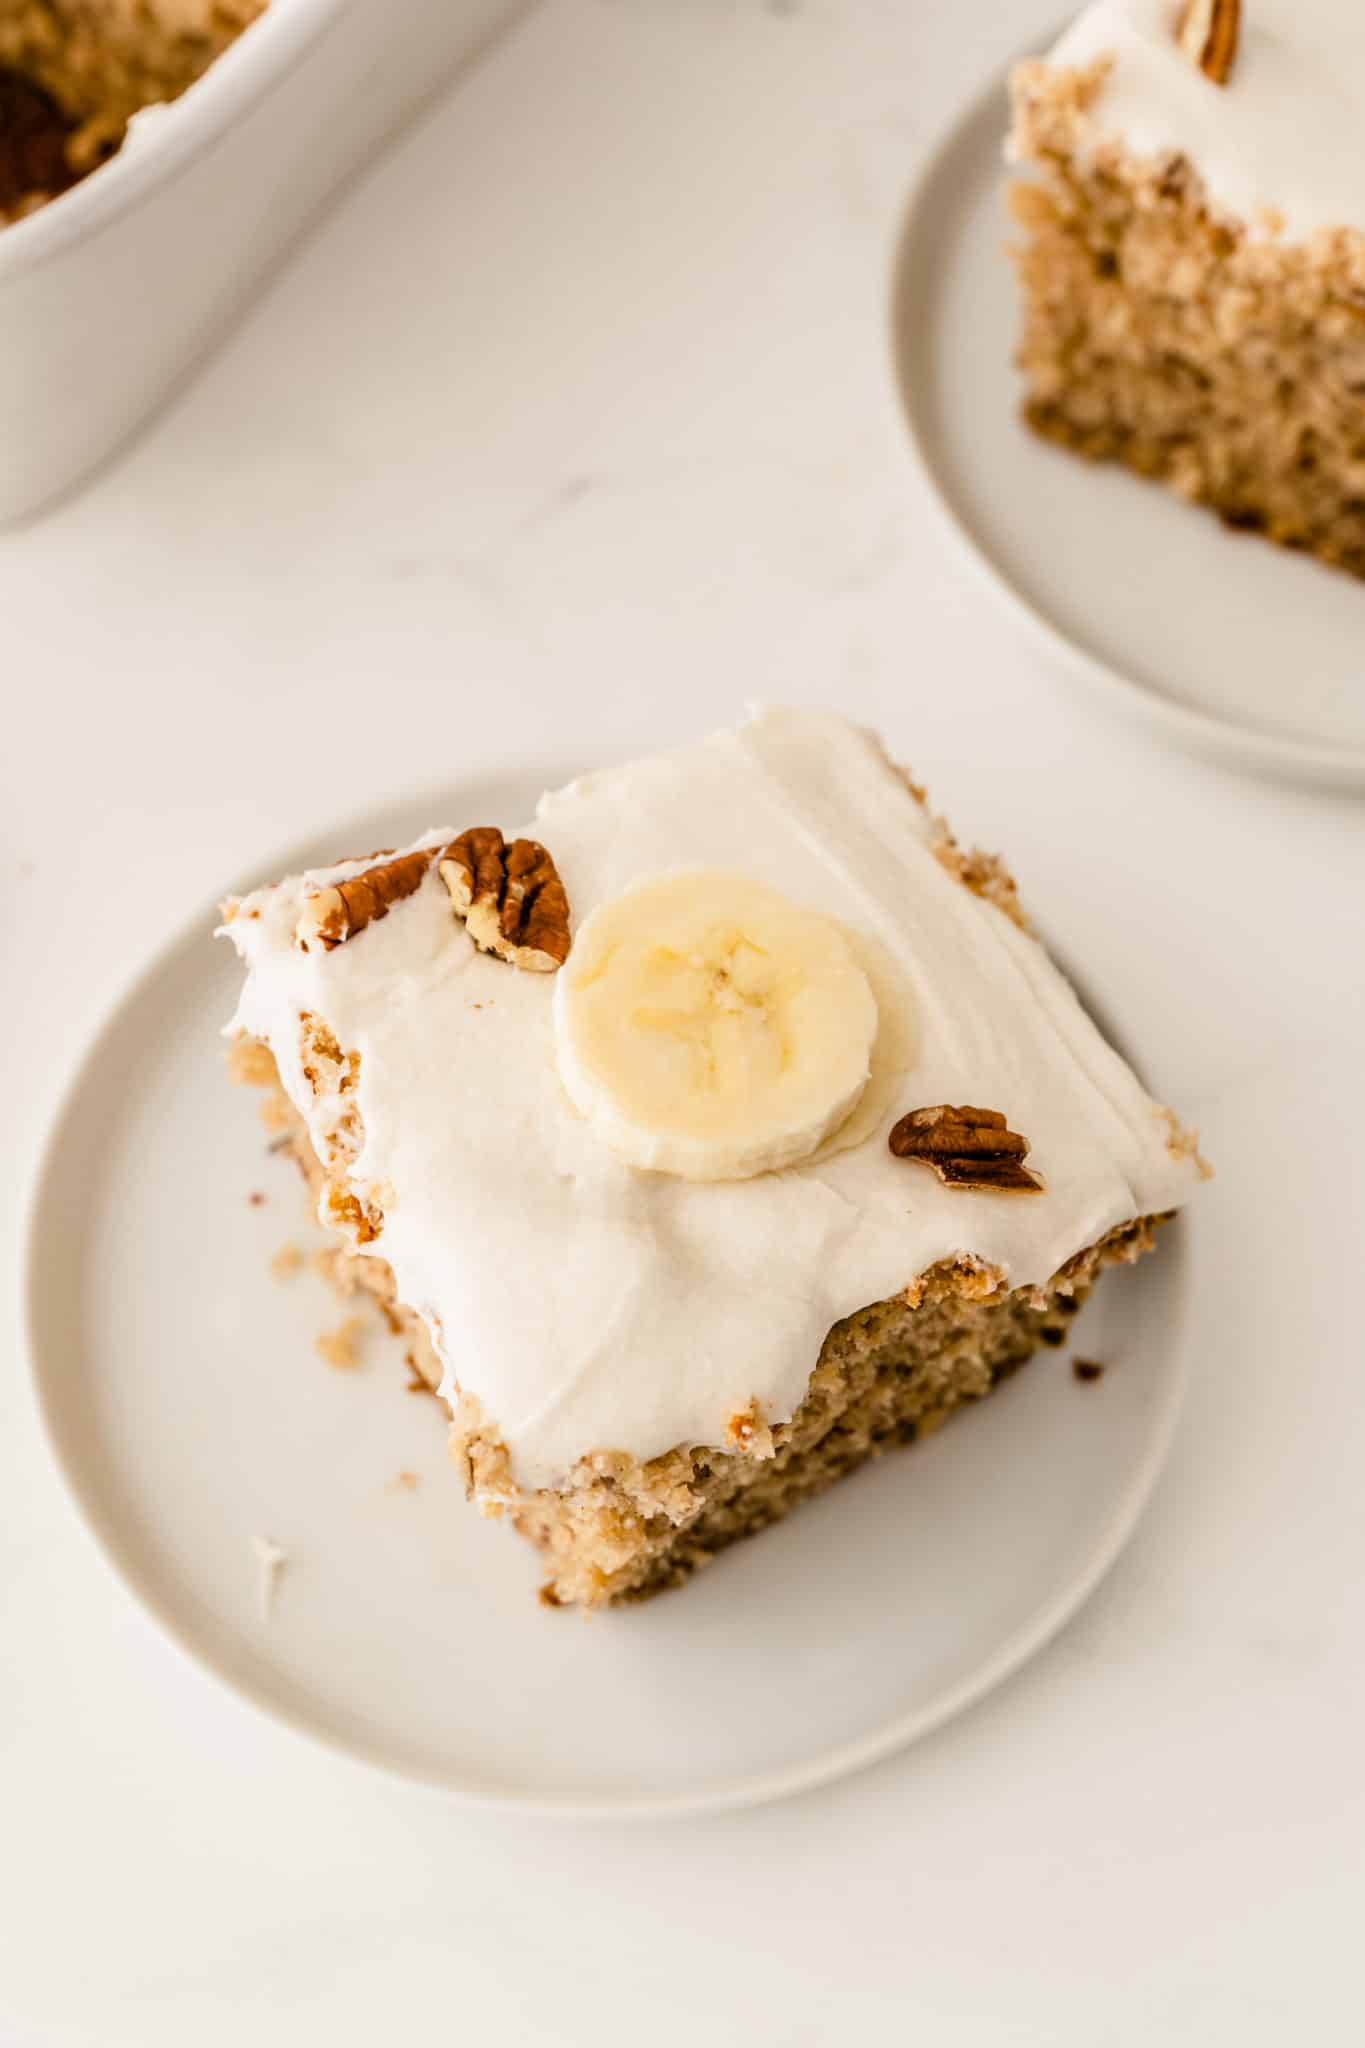 square slice of banana cake with a piece of banana on top